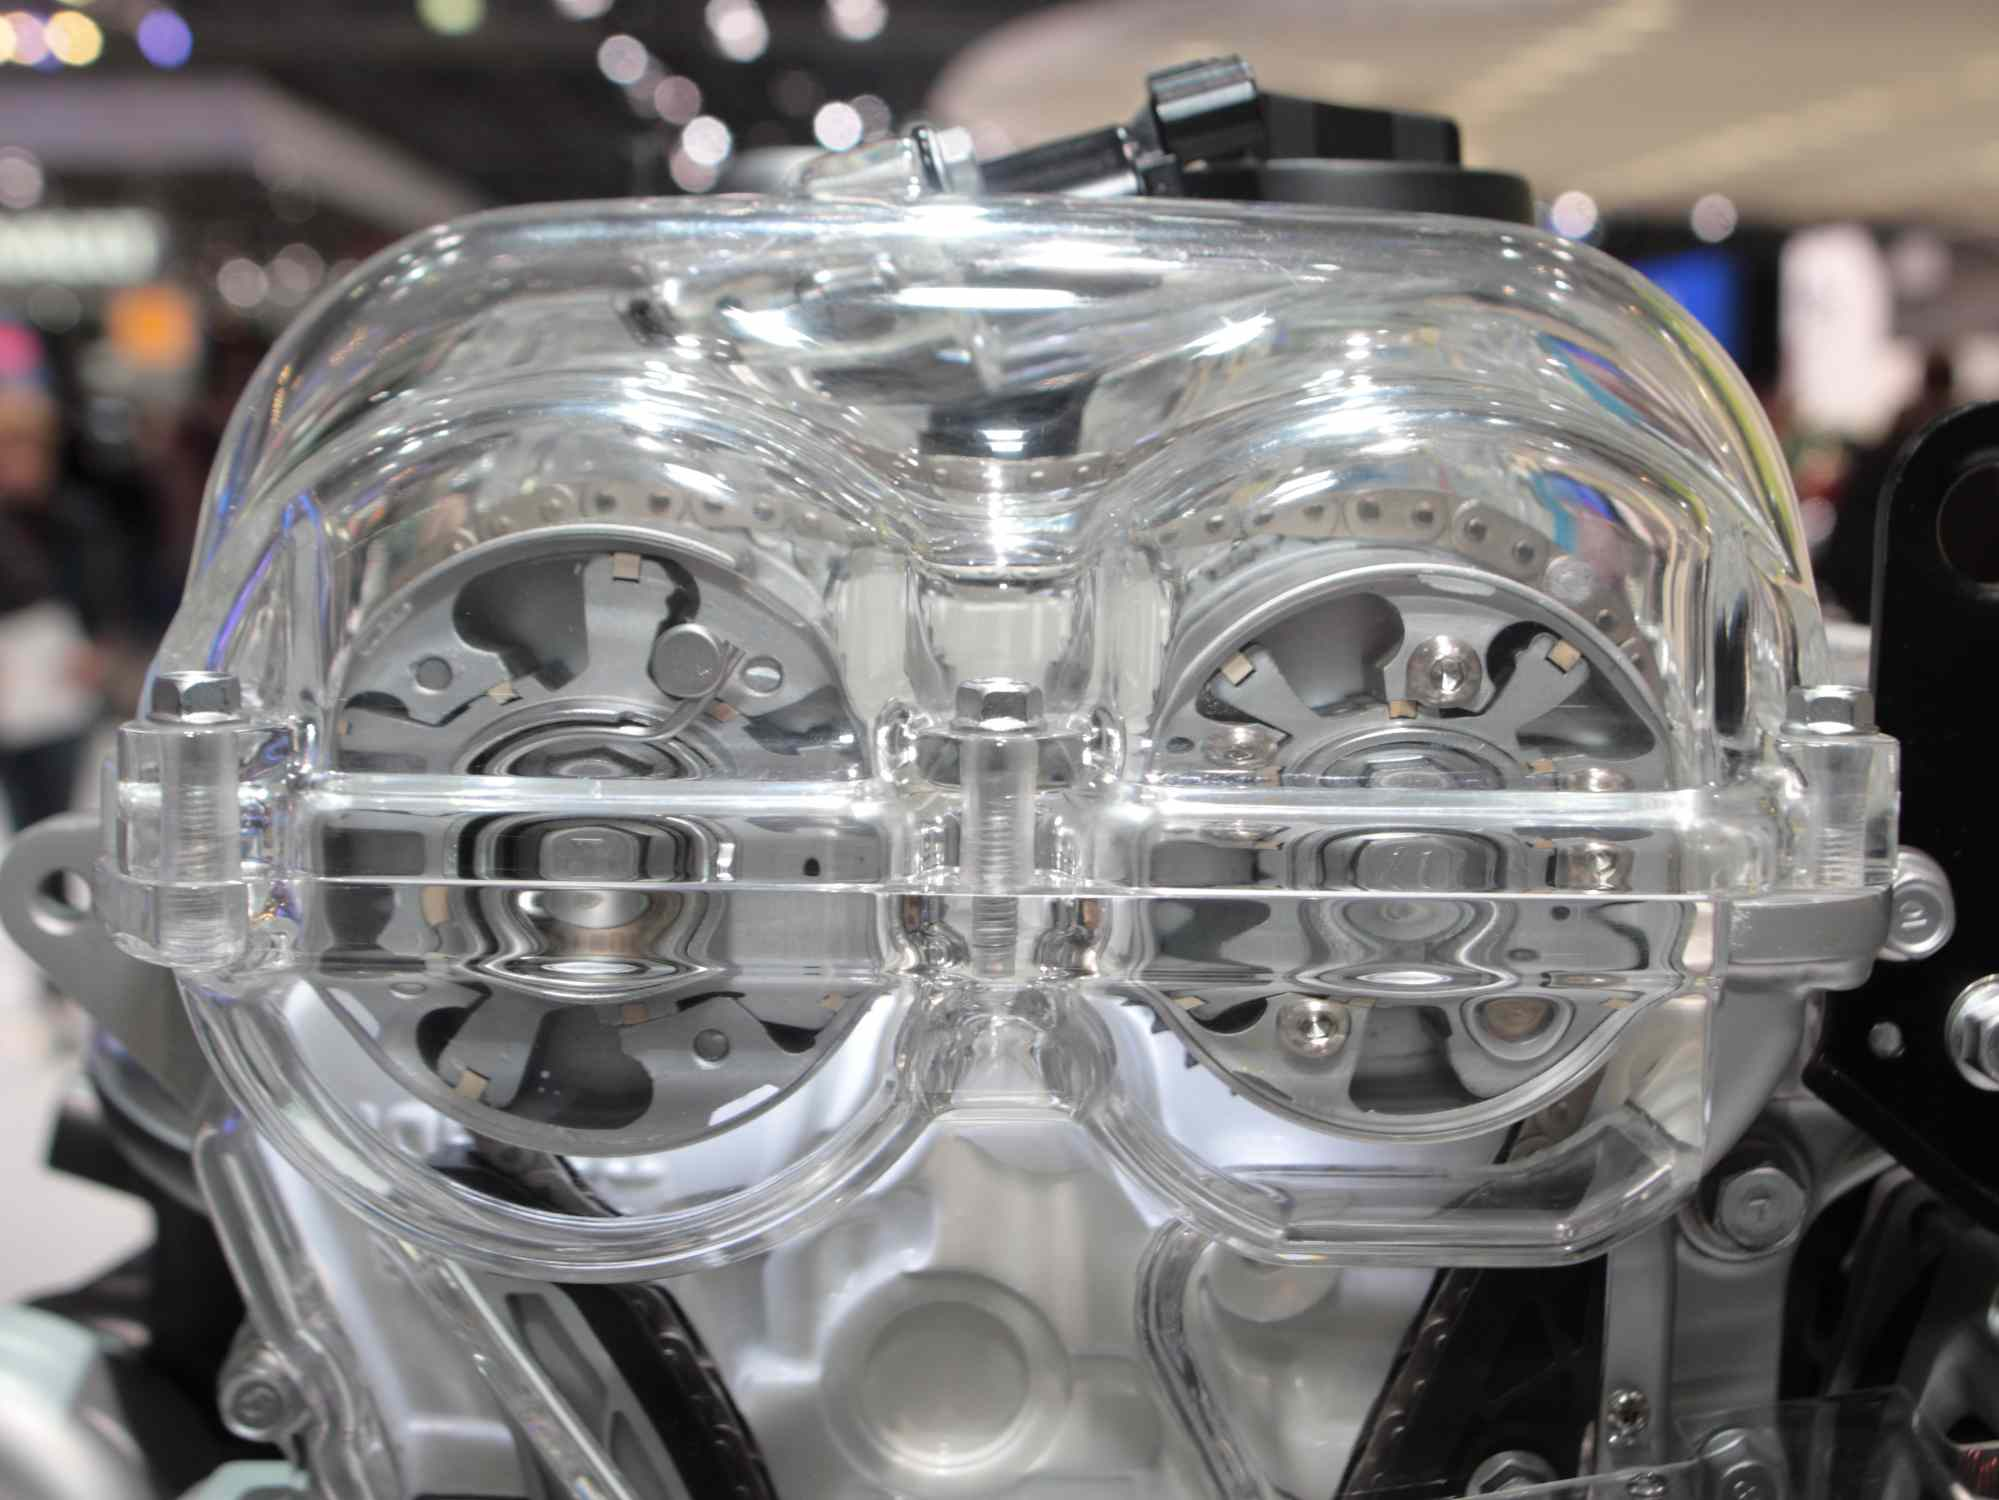 internal view of camshaft phasers to effect variable valve timing